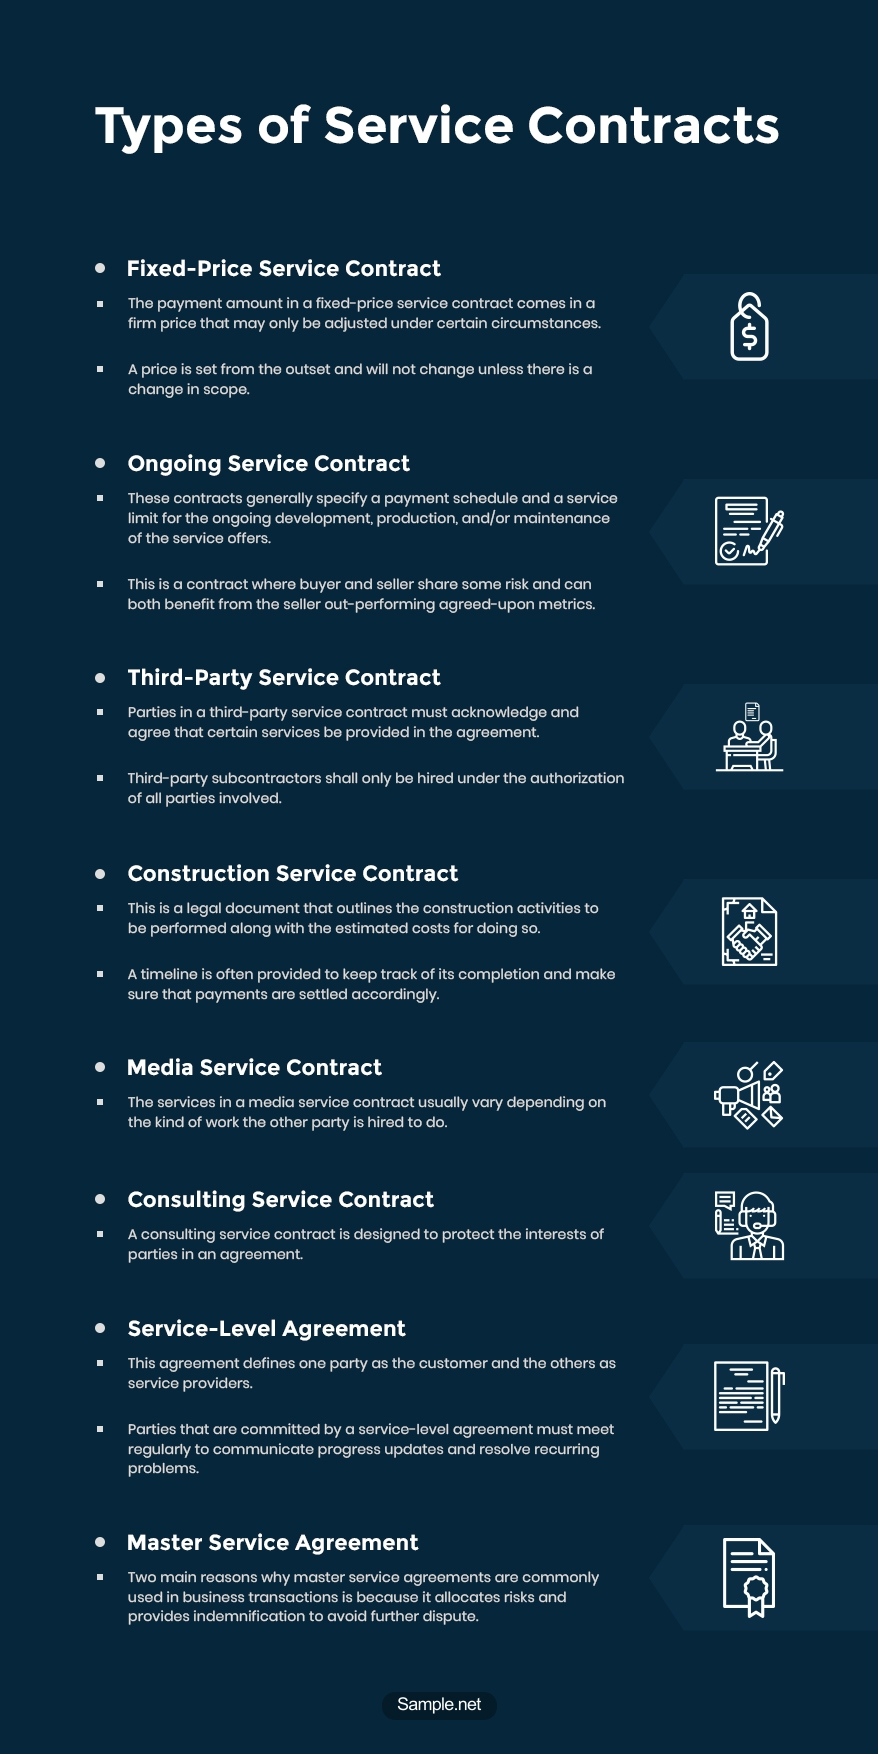 typesofservicecontract